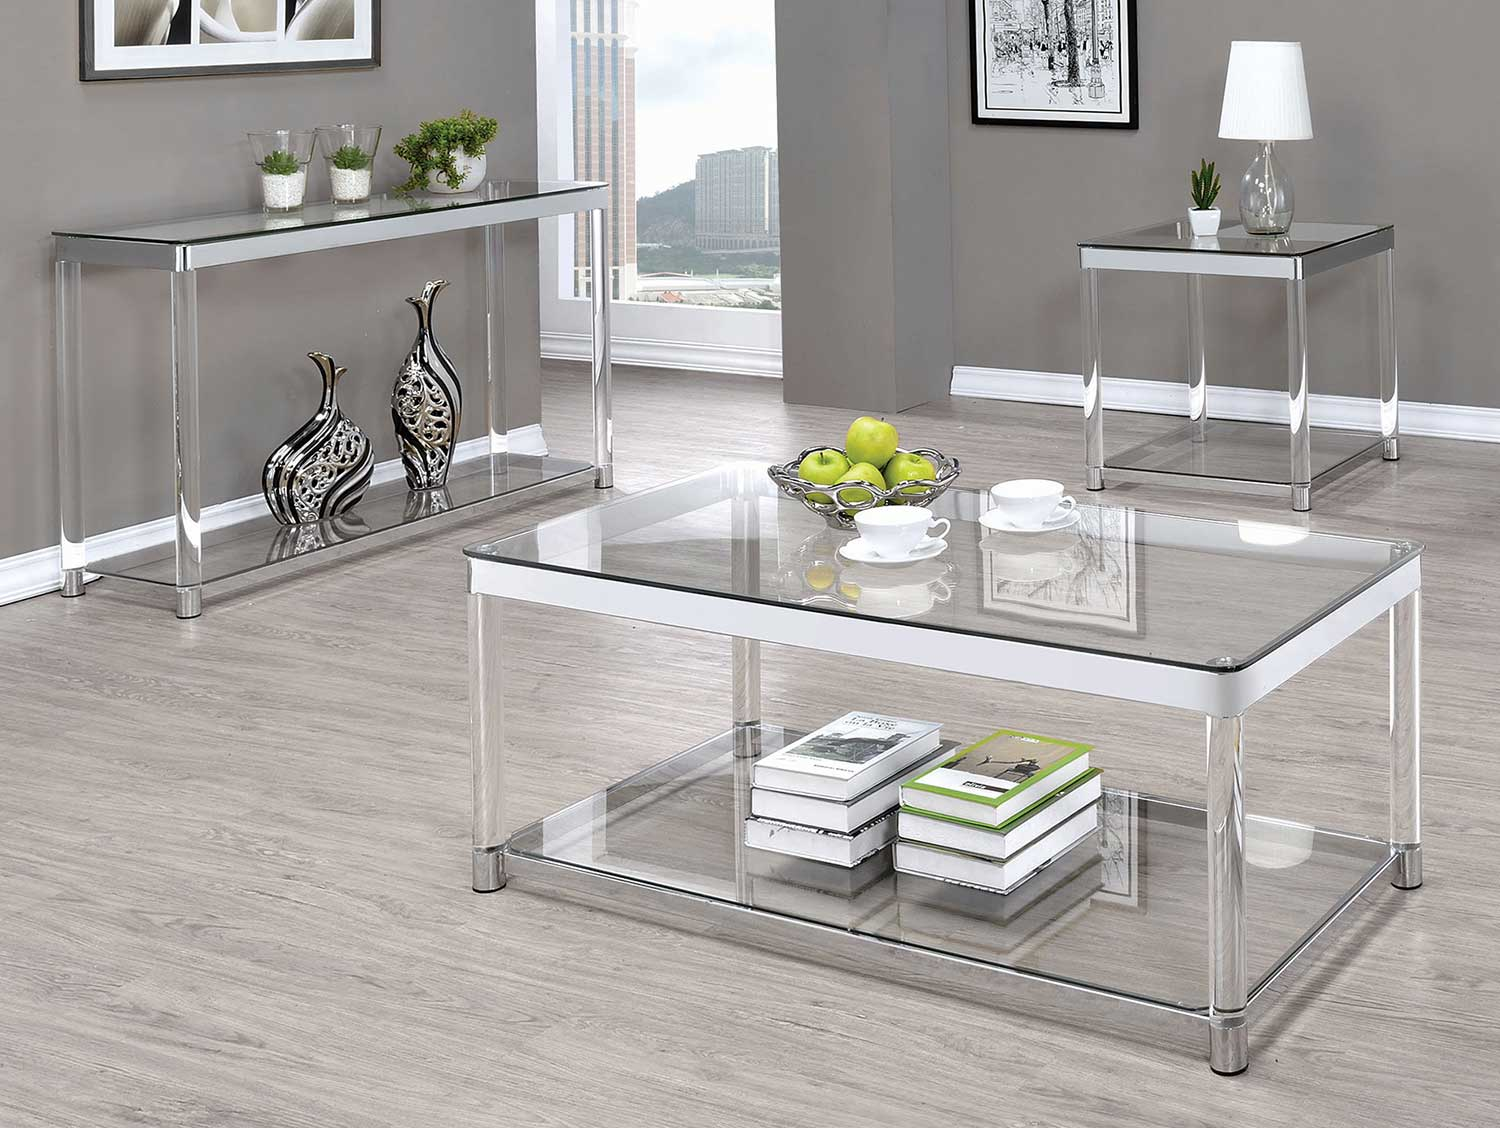 Coaster 720748 Occasional/Coffee Table Set - Chrome/Clear Acrylic